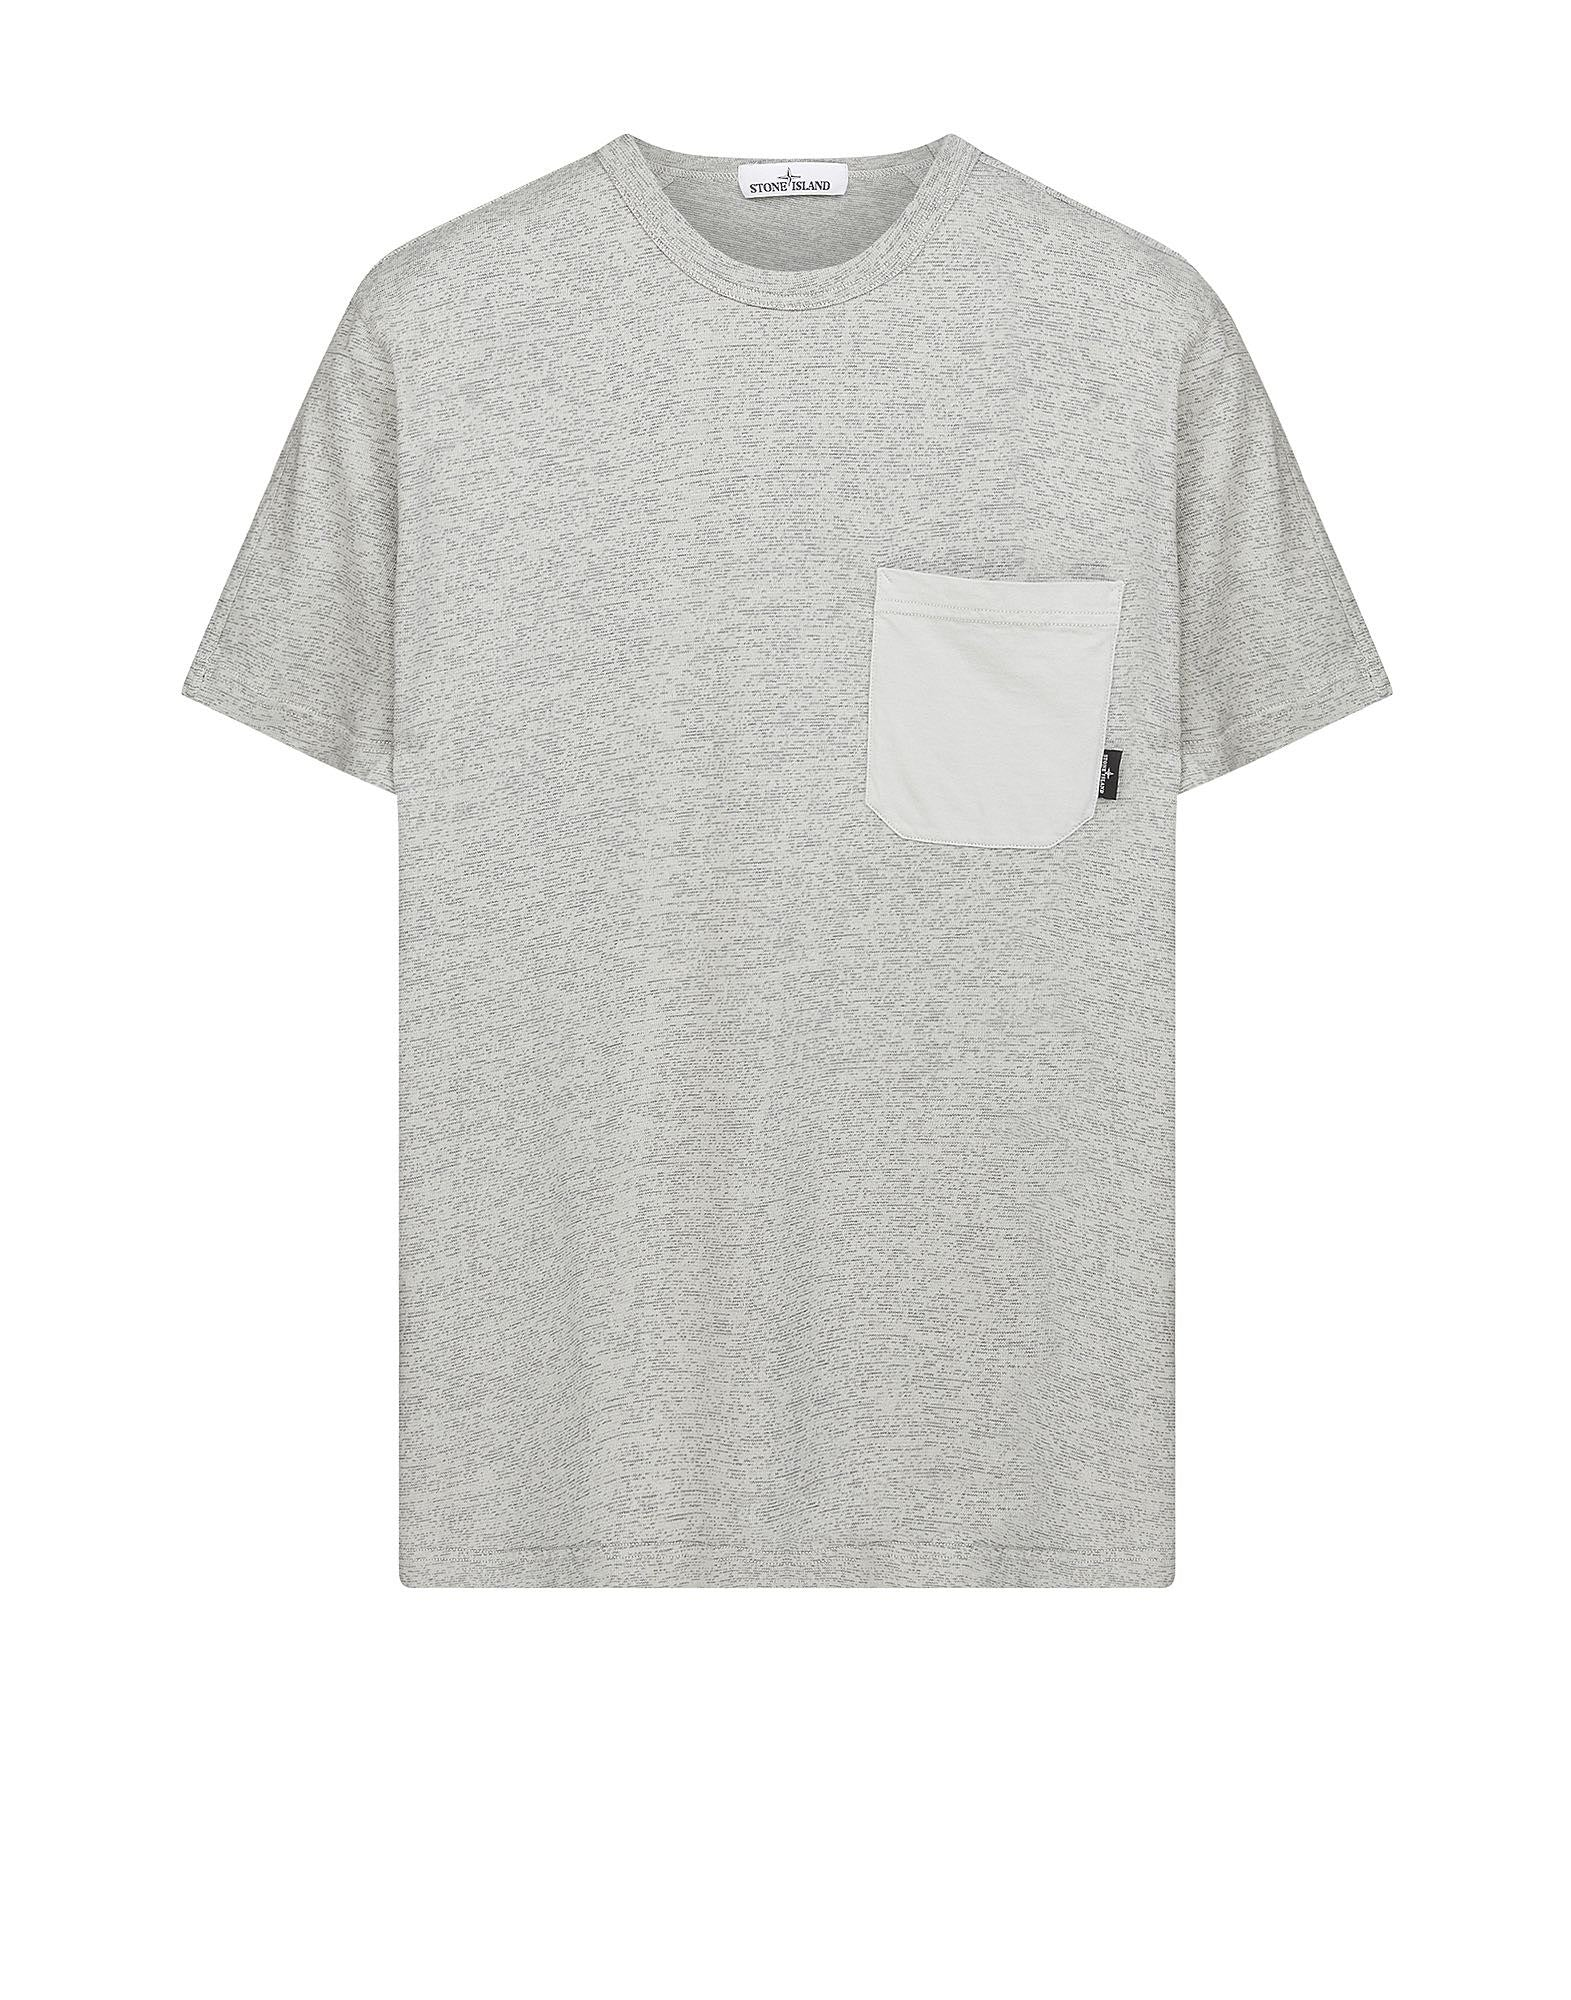 23238 Short sleeve T-Shirt in Grey